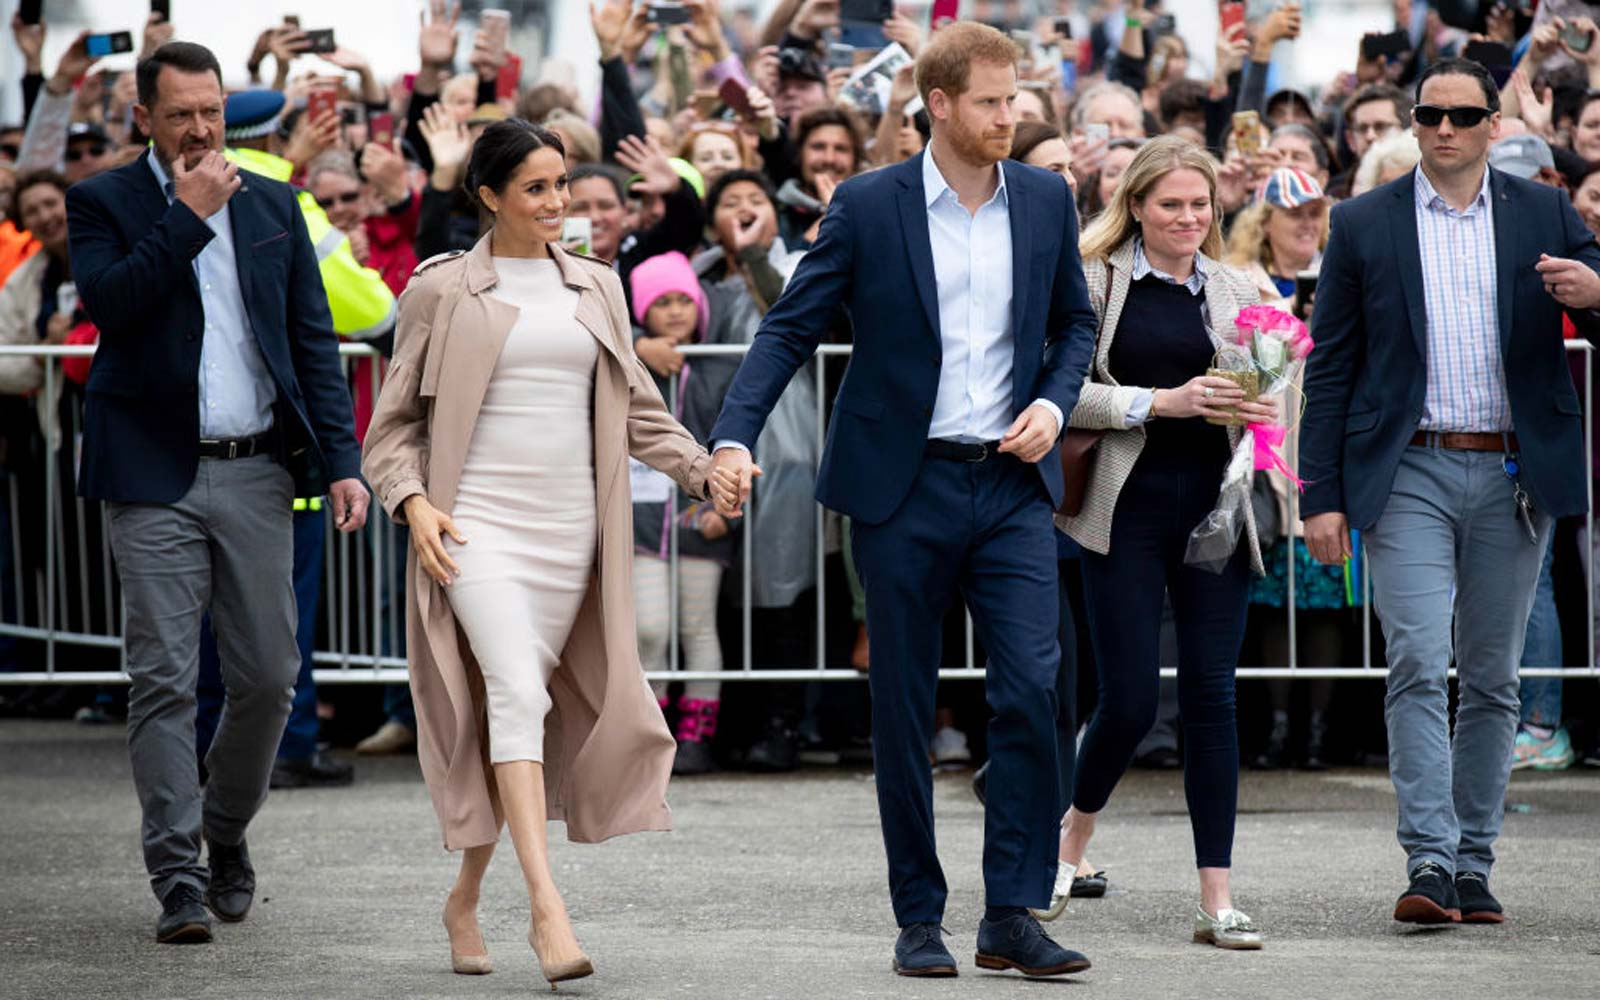 Meghan Markle and Prince Harry Continue Royal Tour After 6.2 Magnitude Earthquake Hits New Zealand